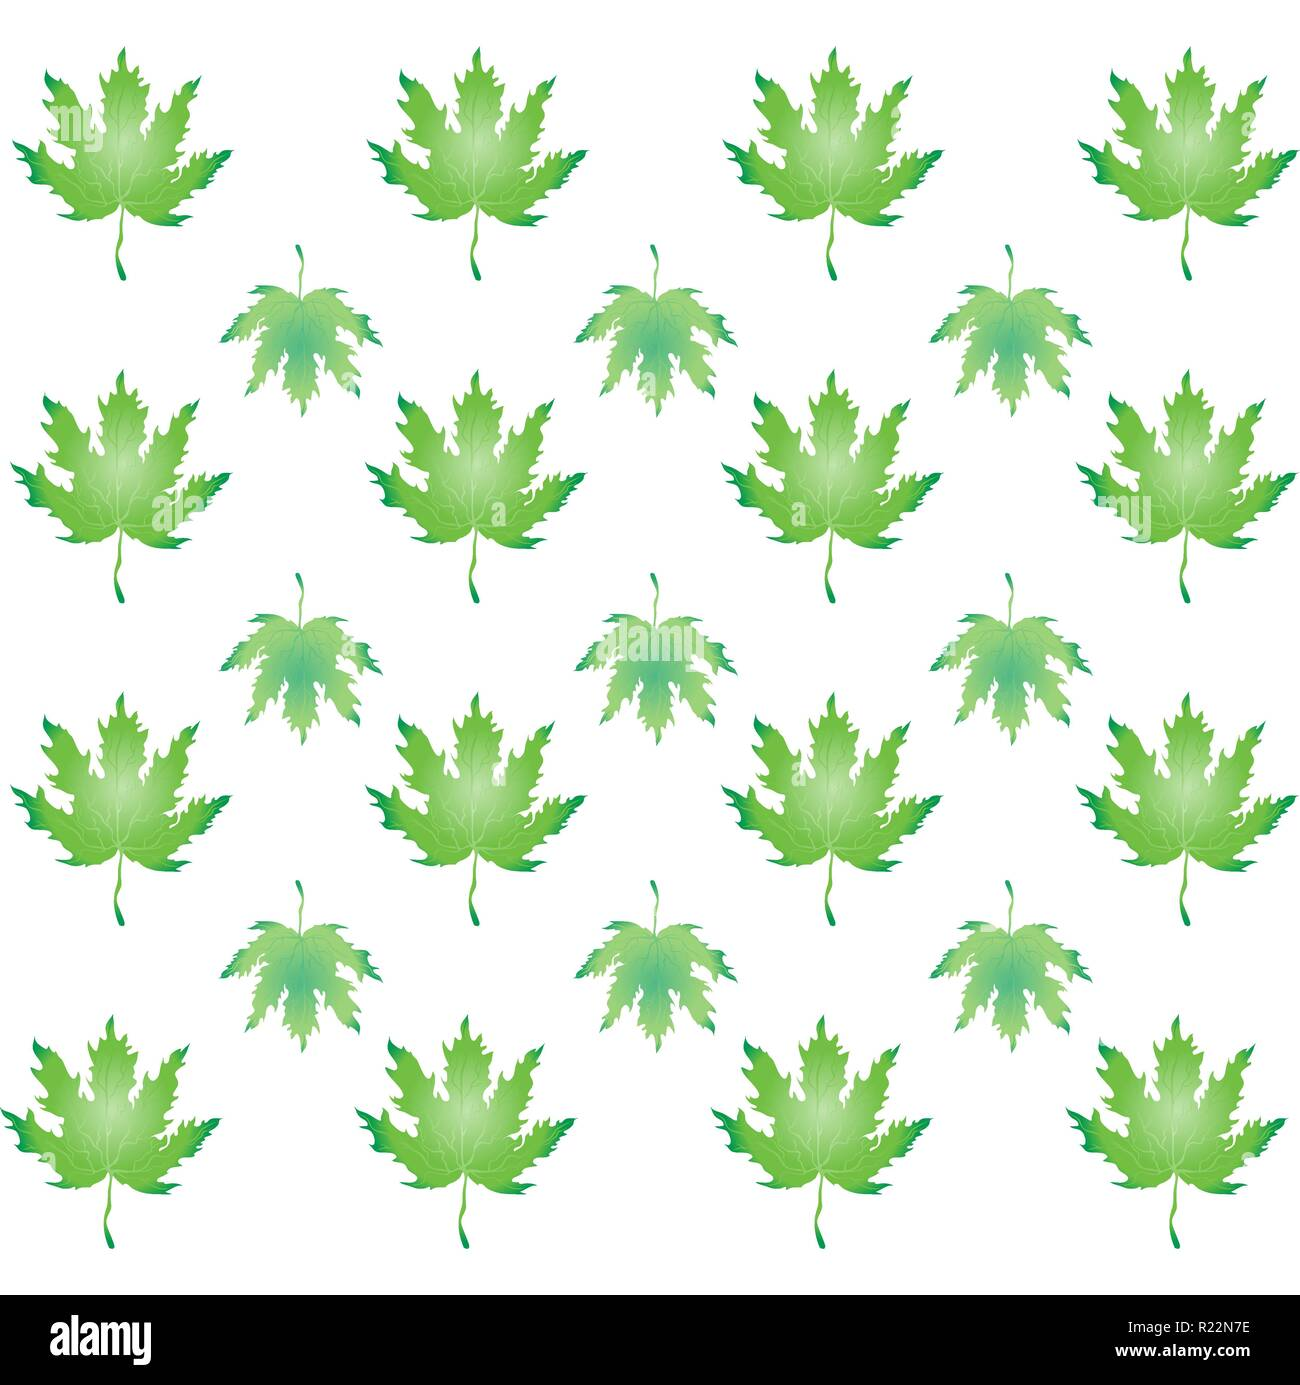 Autumn Leaves Green Pattern Falling Leafs For Print And Web Design Stock Vector Image Art Alamy